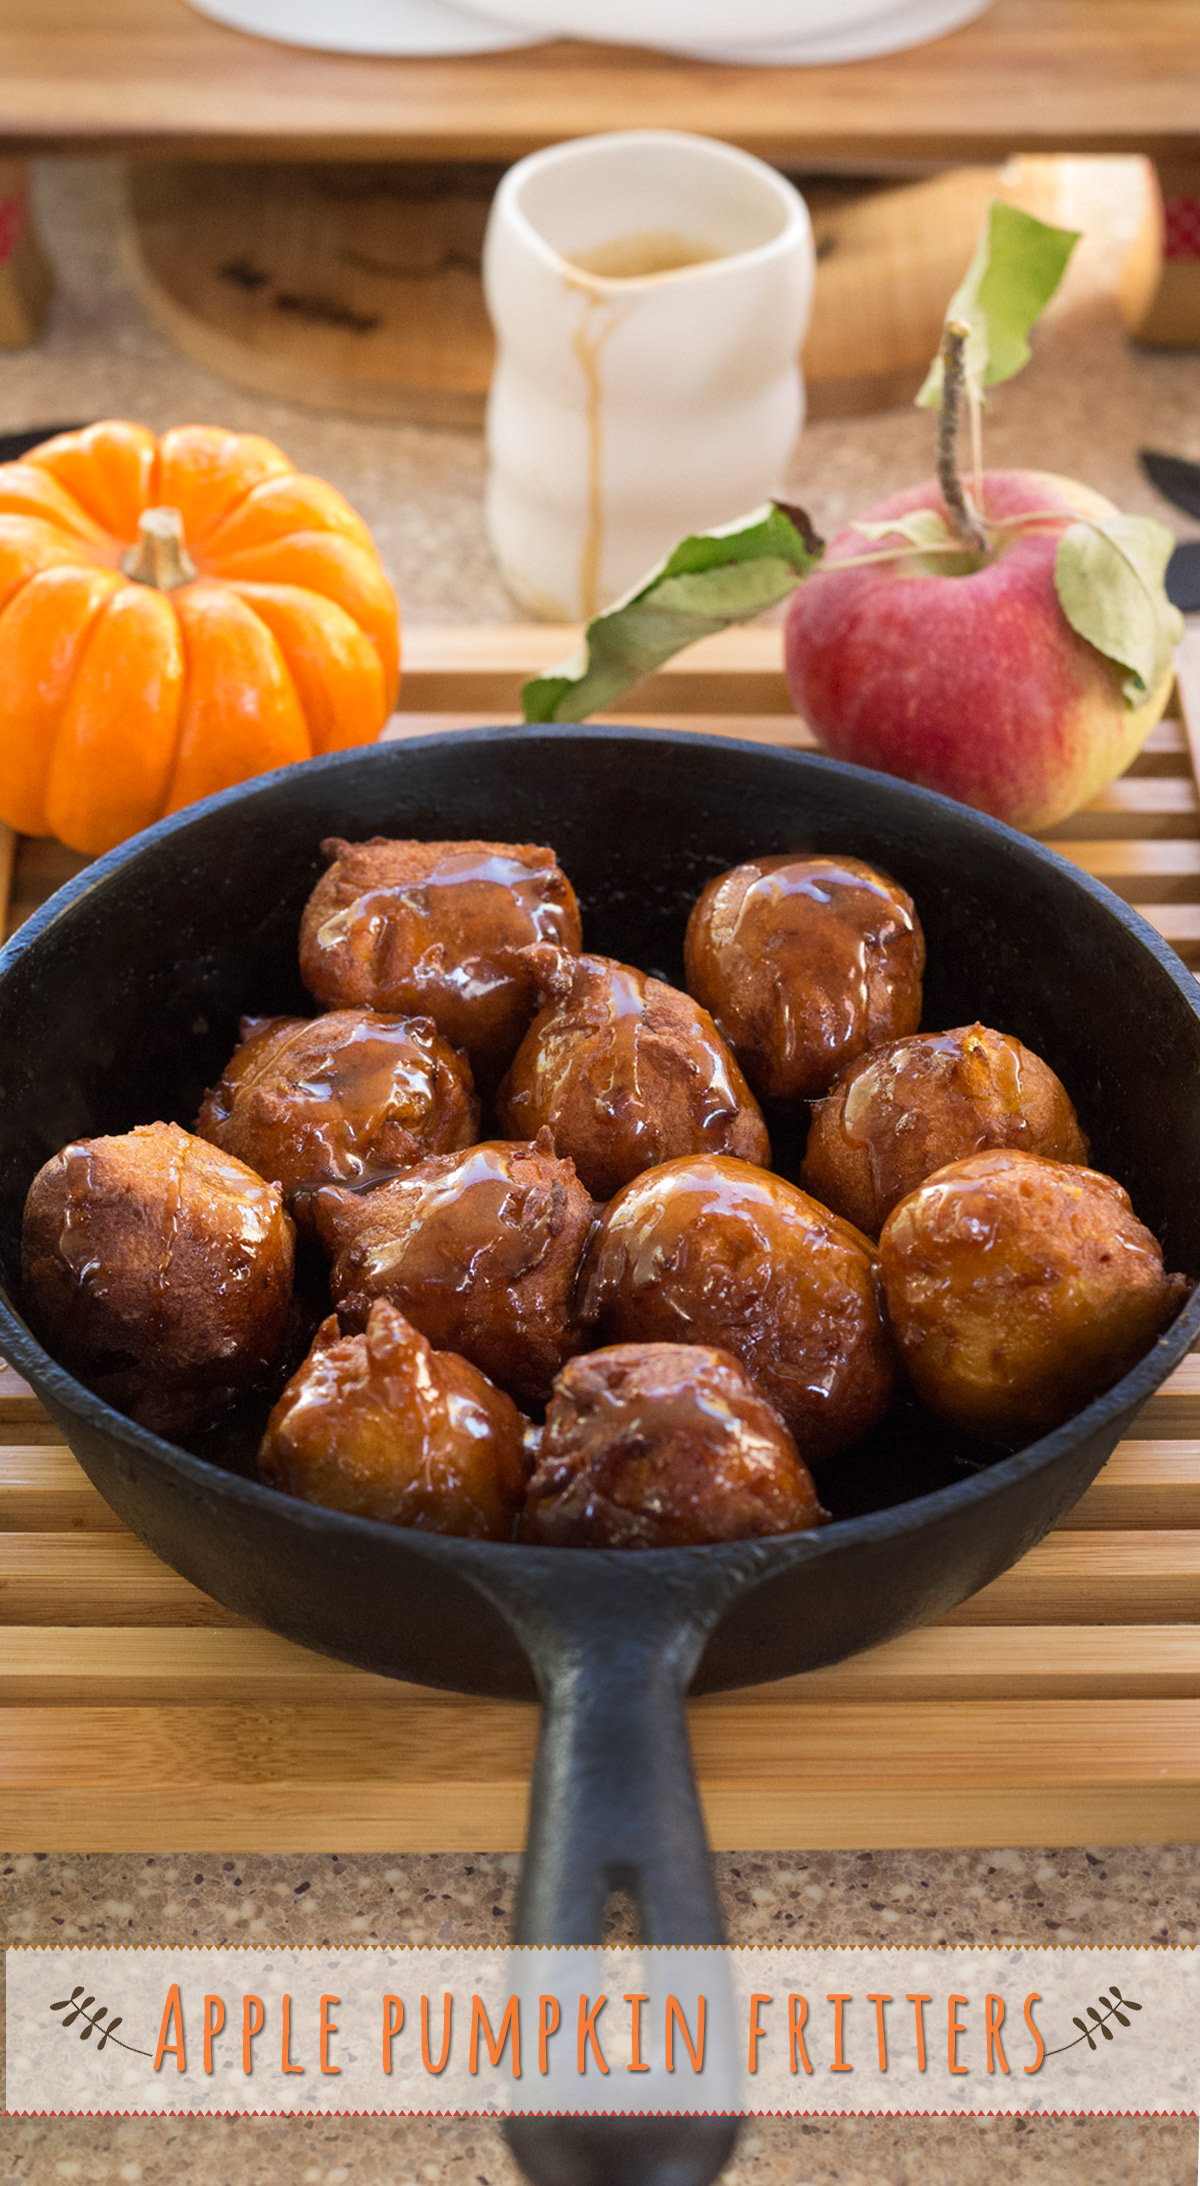 Apple Pumpkin Fritters